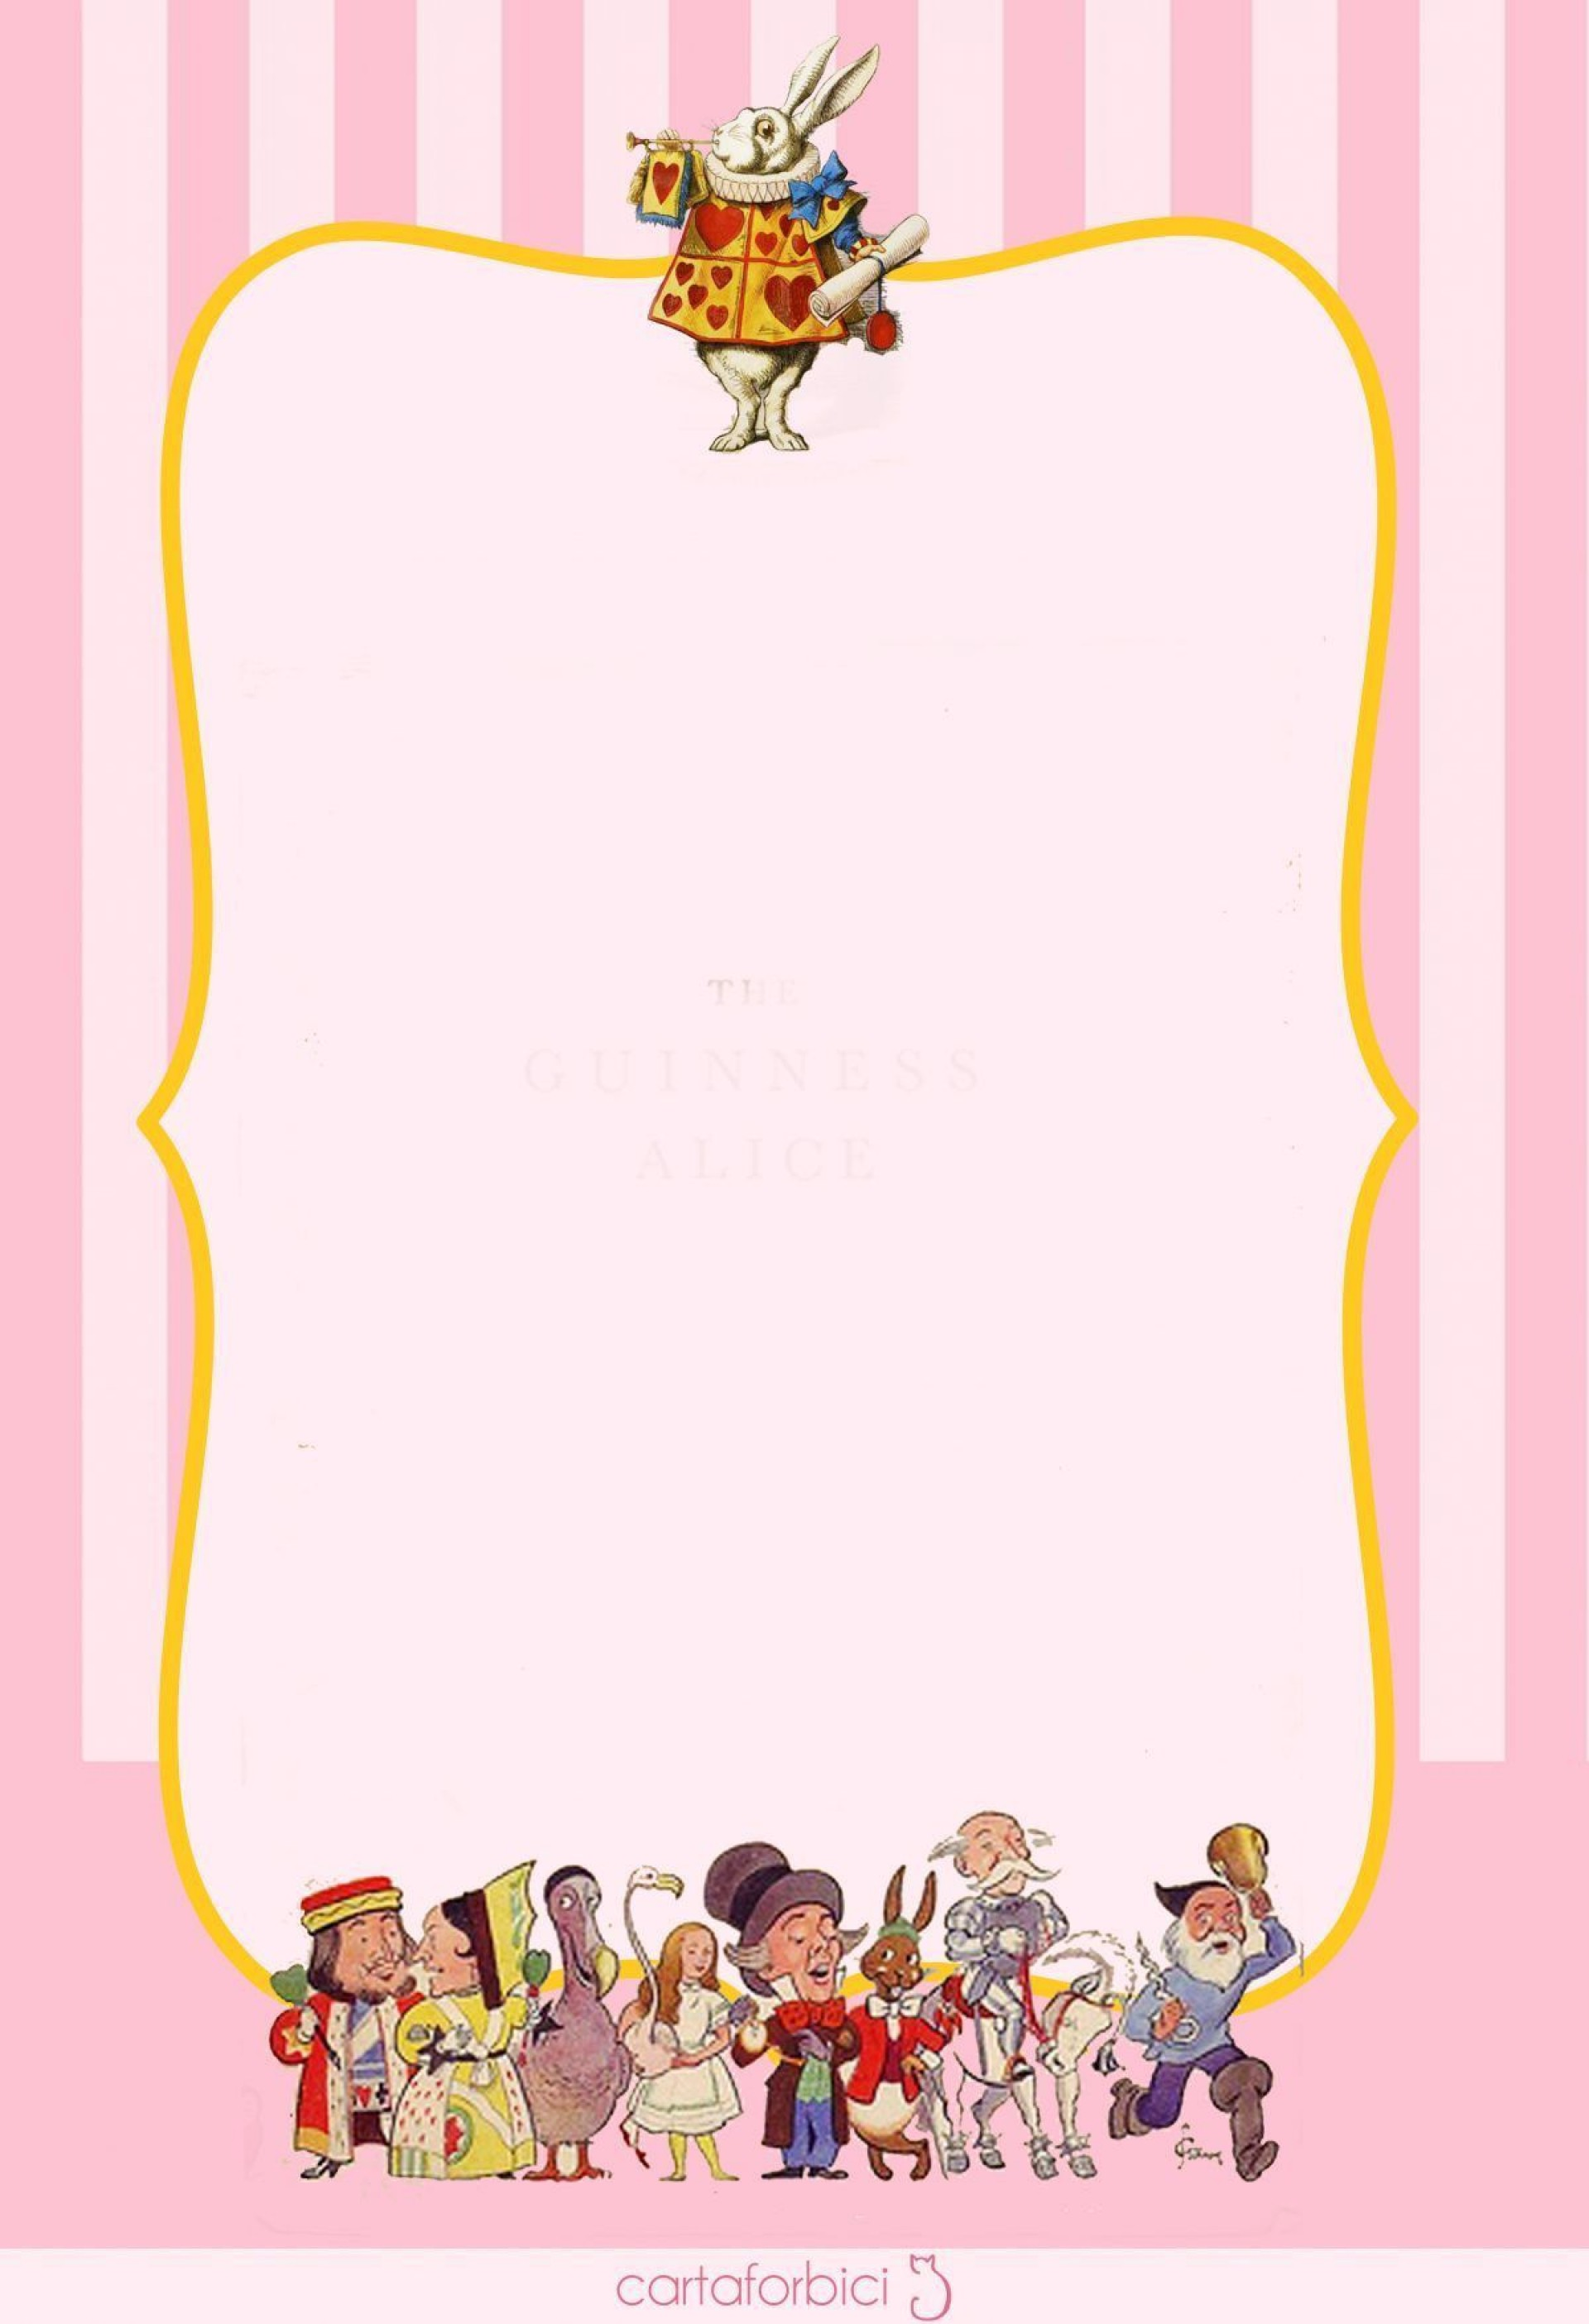 004 Amazing Alice In Wonderland Invitation Template Example  Templates Birthday Free Wedding Wording Download1920